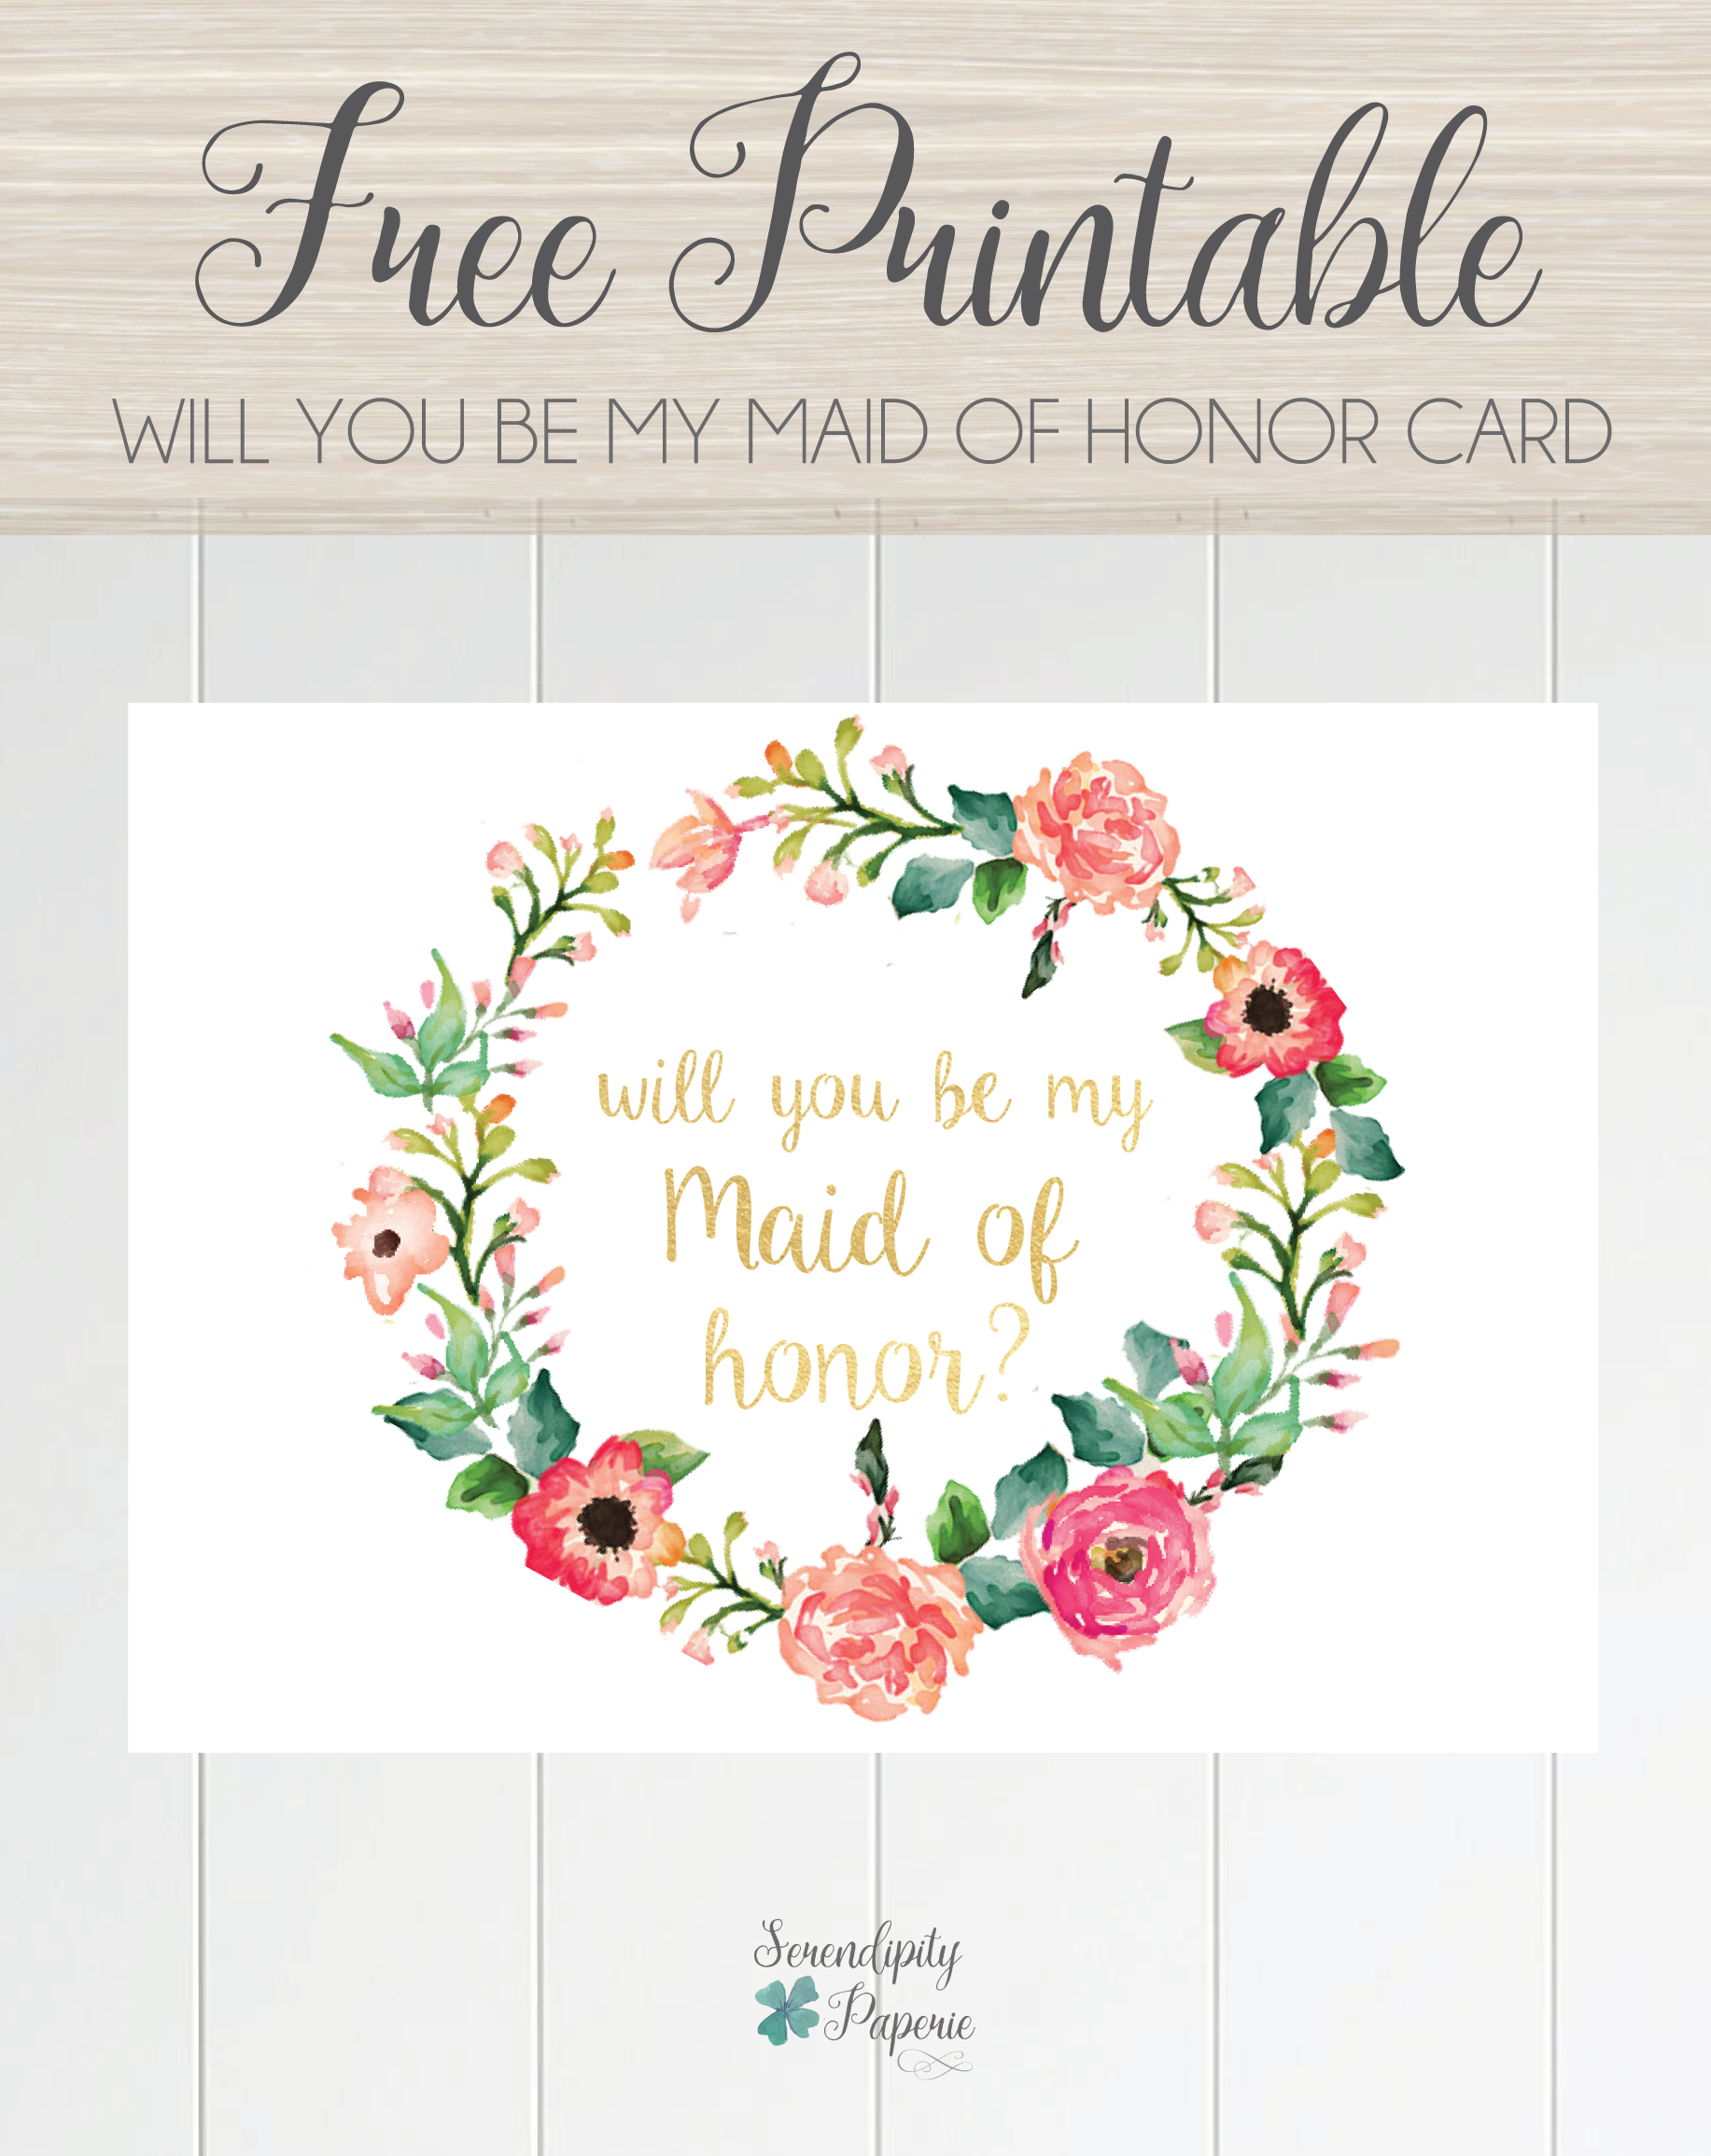 Free Printable Will You Be My Maid Of Honor Card, Floral Wreath - Free Printable Will You Be My Bridesmaid Cards